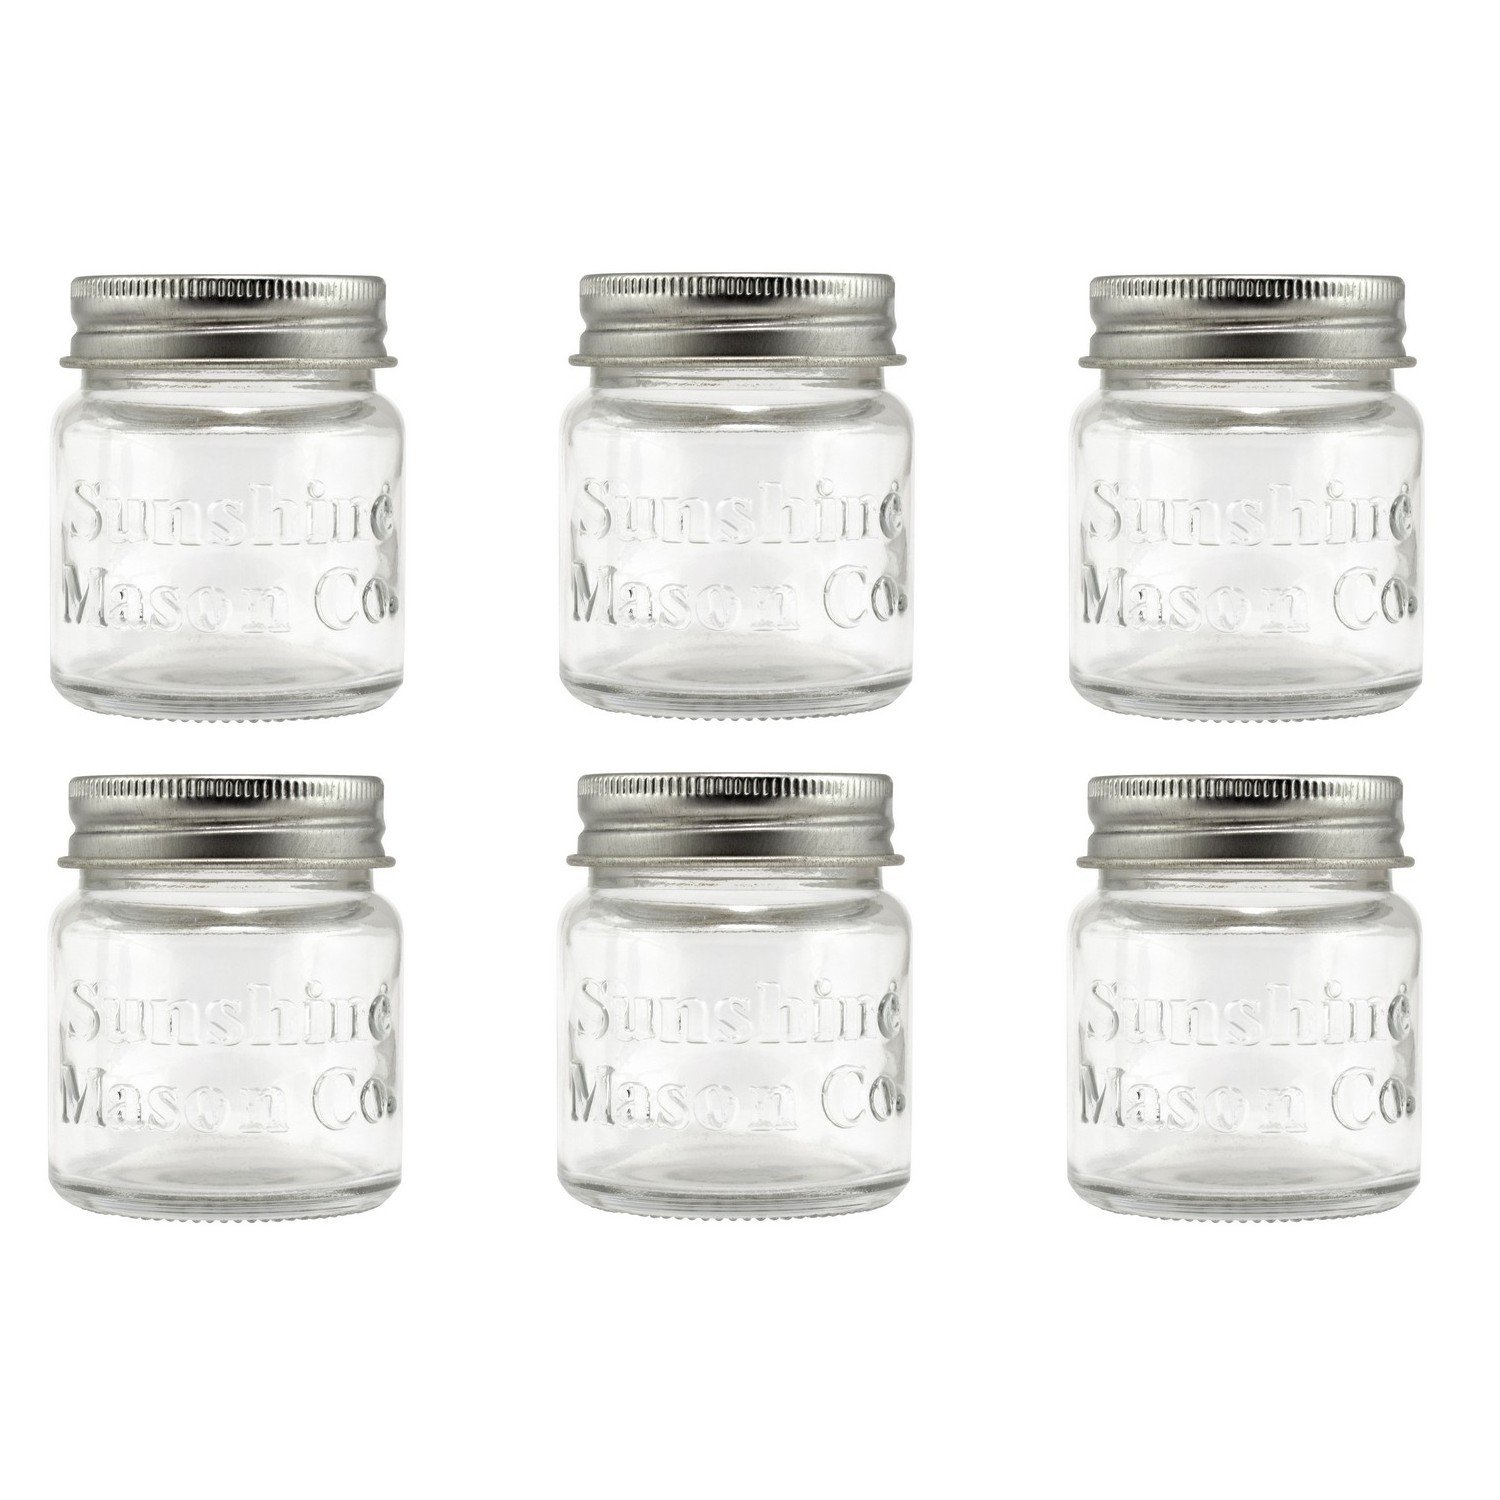 Amazon.com | Sunshine Mason Co. Mini Mason Jar Shot Glasses with ...